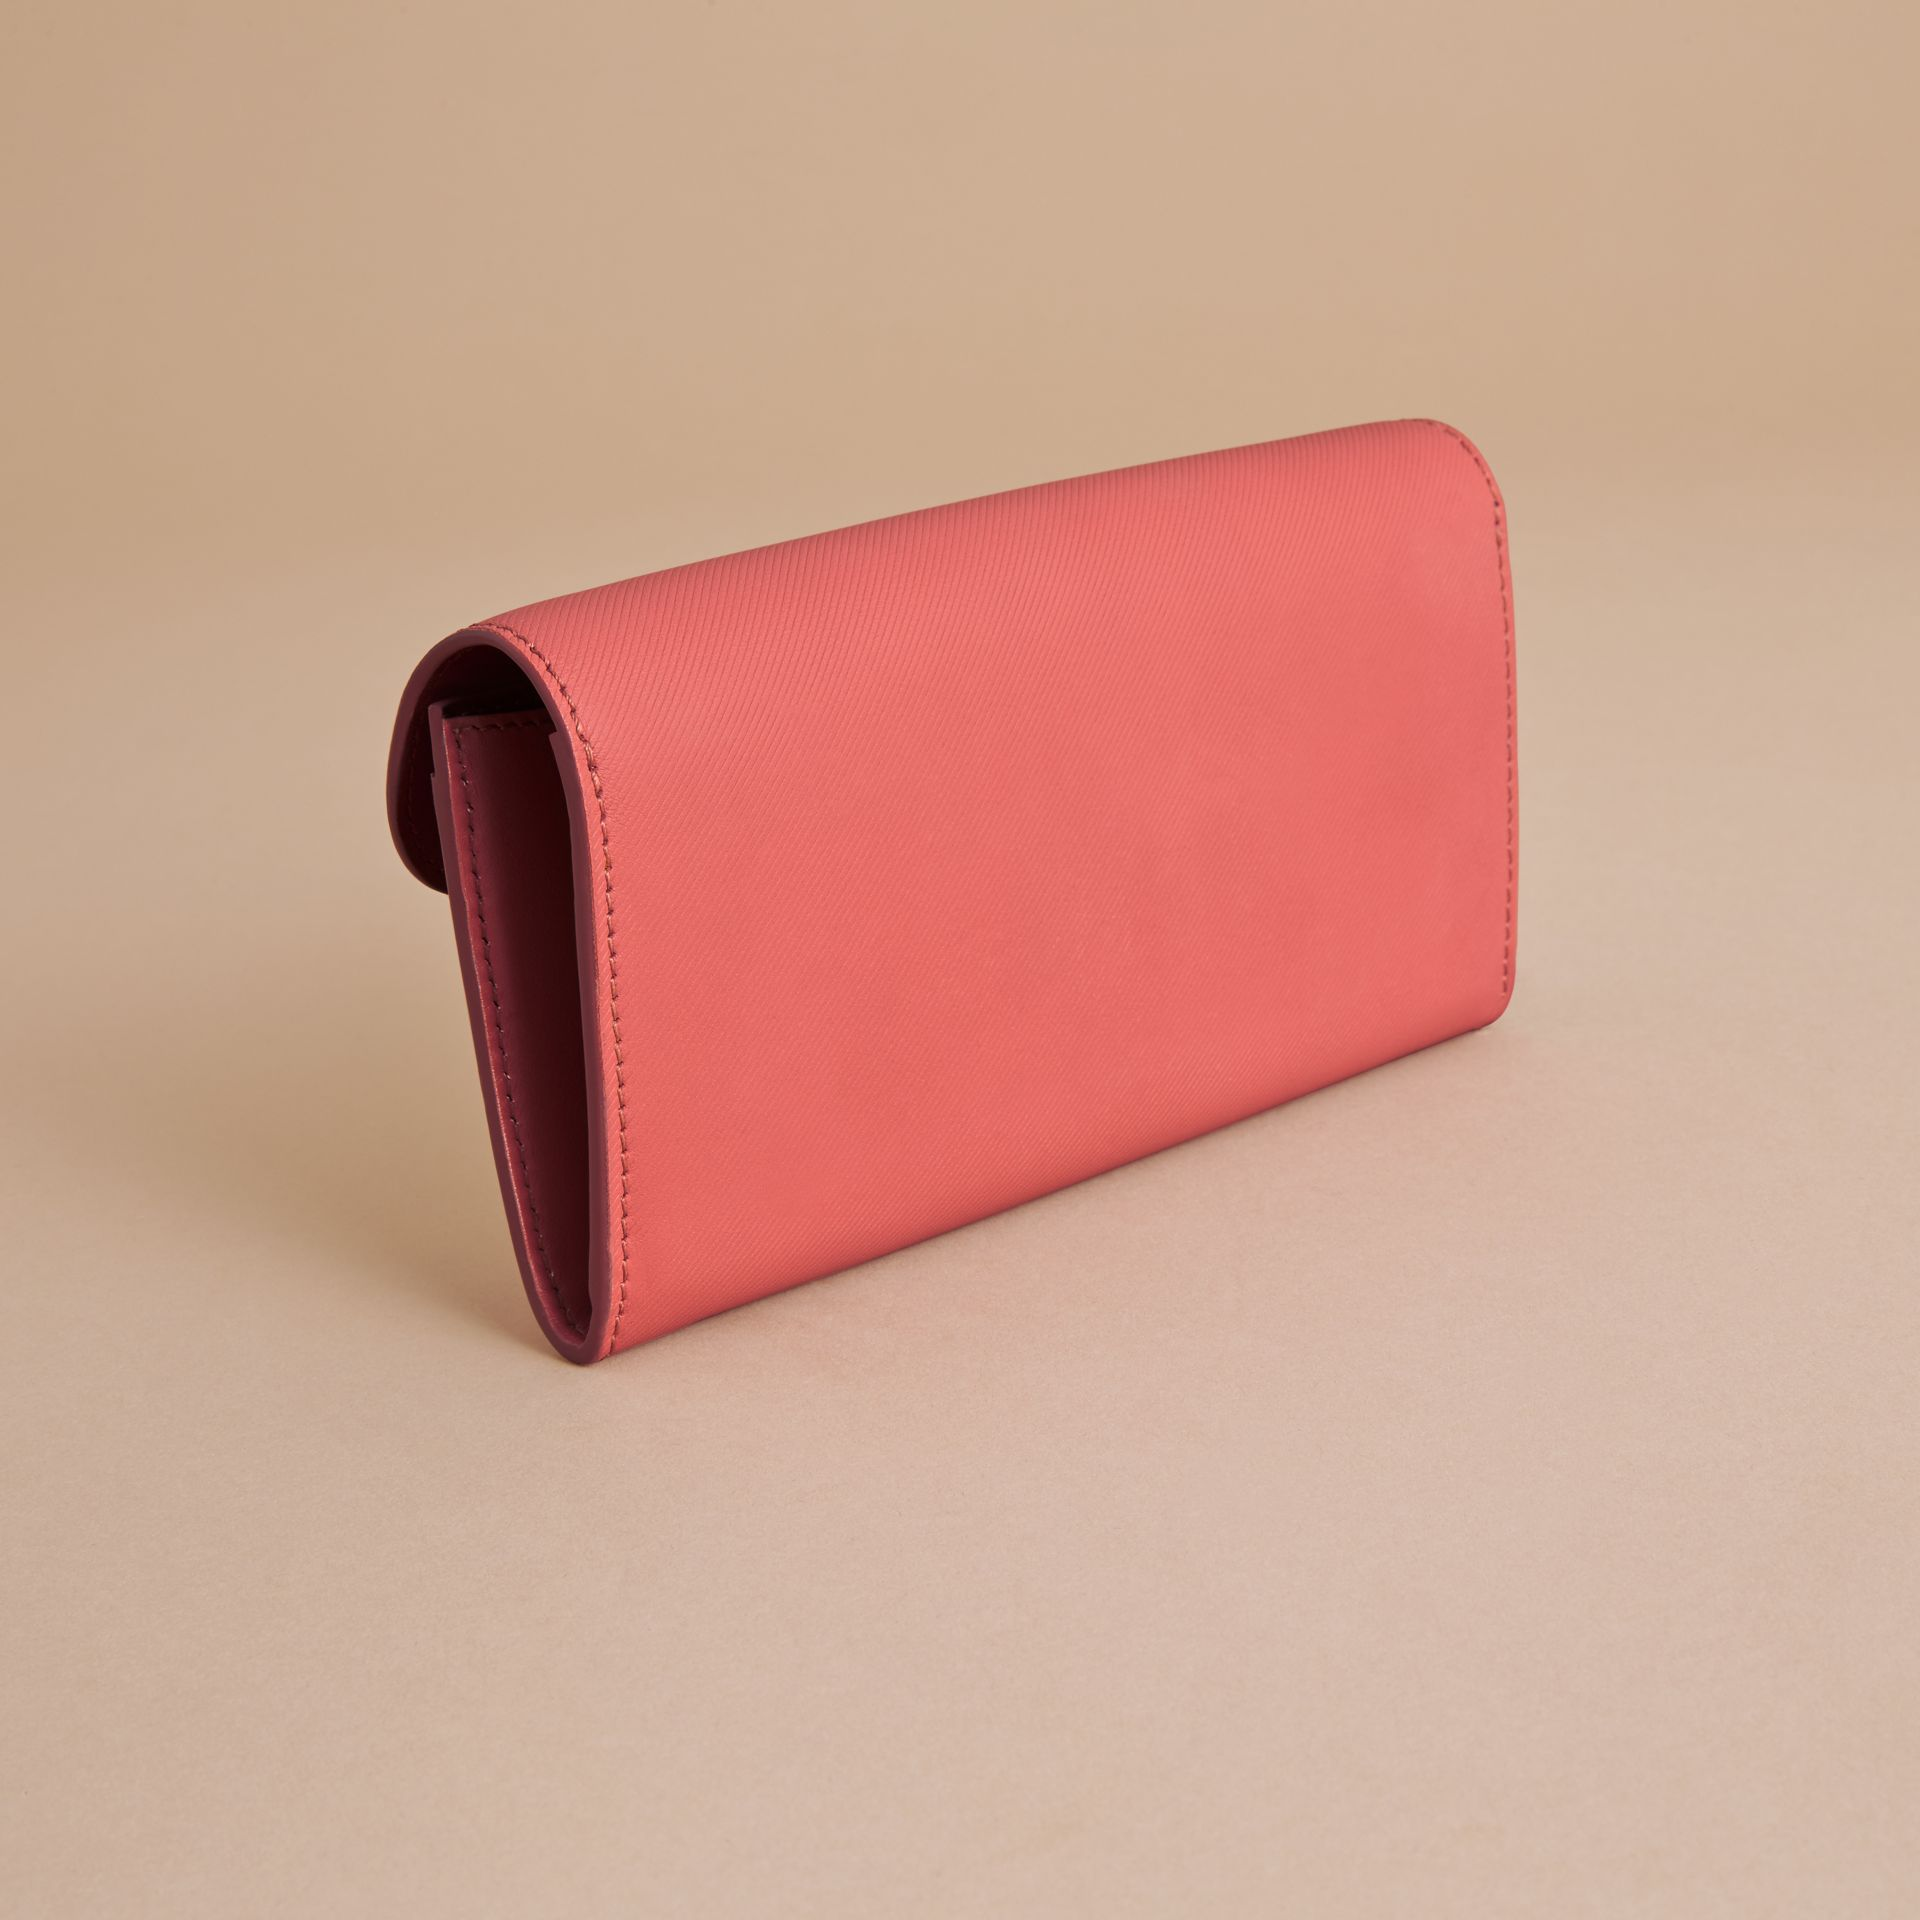 Two-tone Trench Leather Continental Wallet in Blossom Pink/antique Red - Women | Burberry - gallery image 3